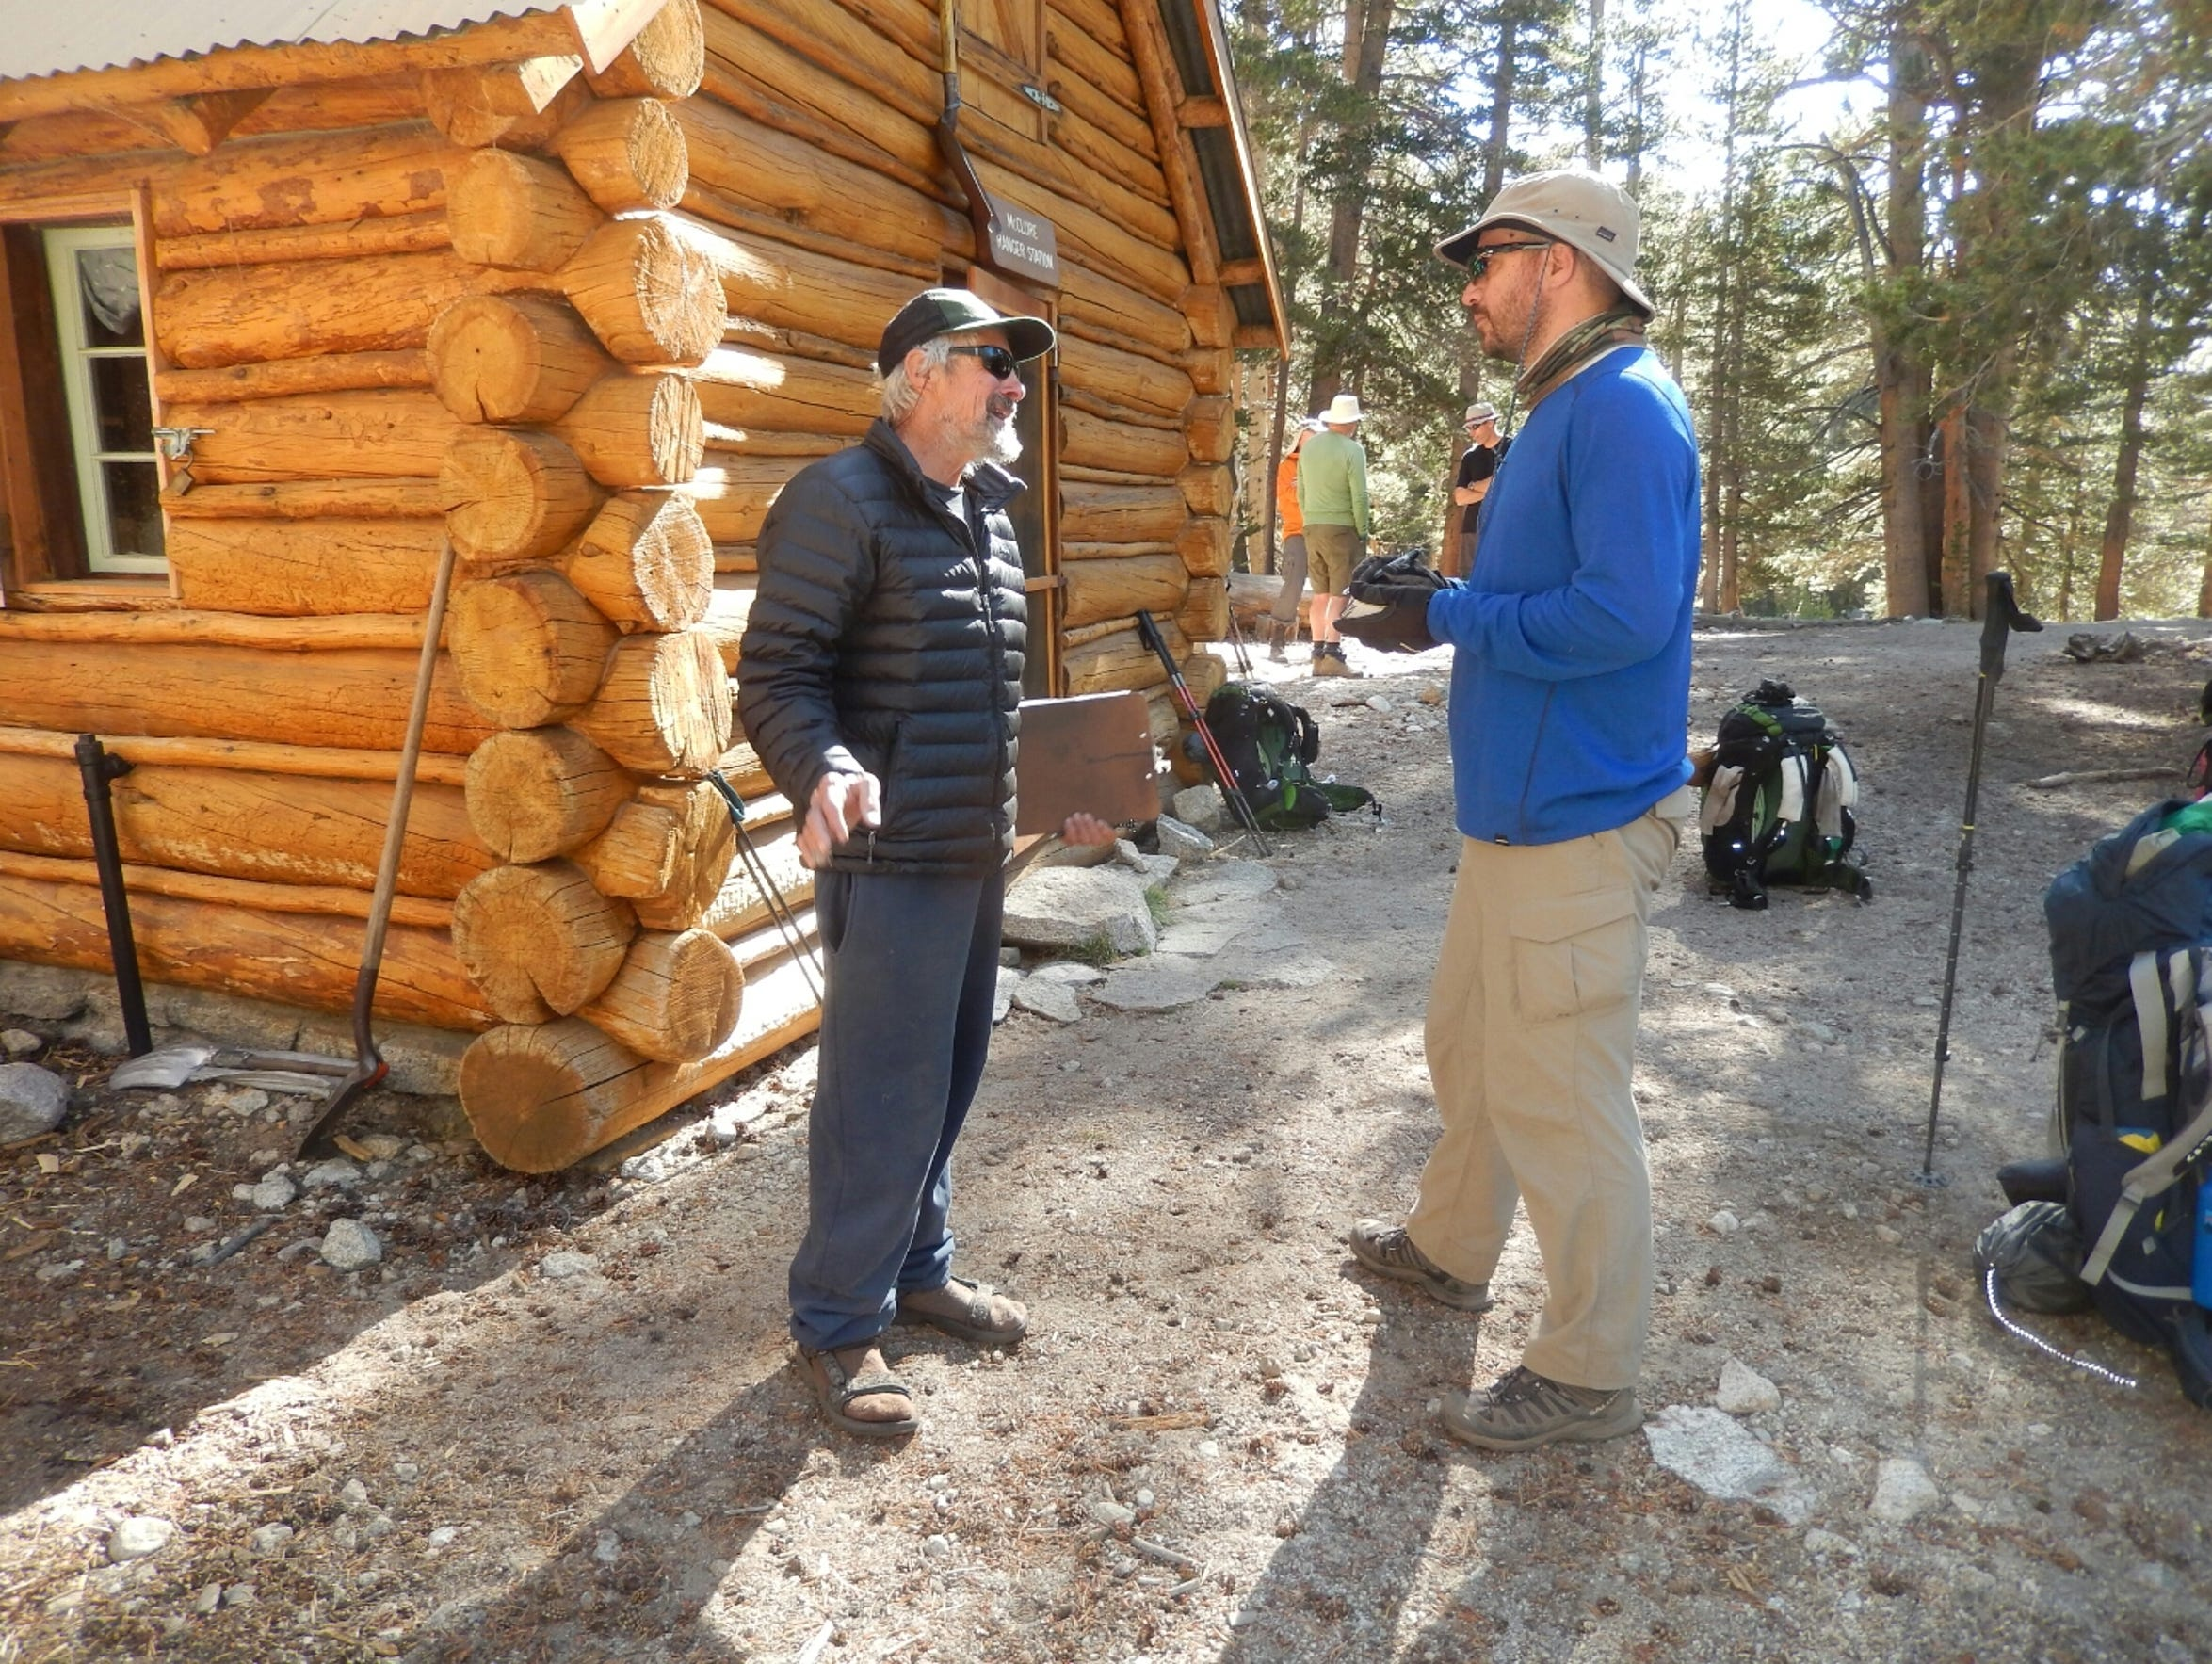 Chatting with Sequoia Kings National Park backcountry